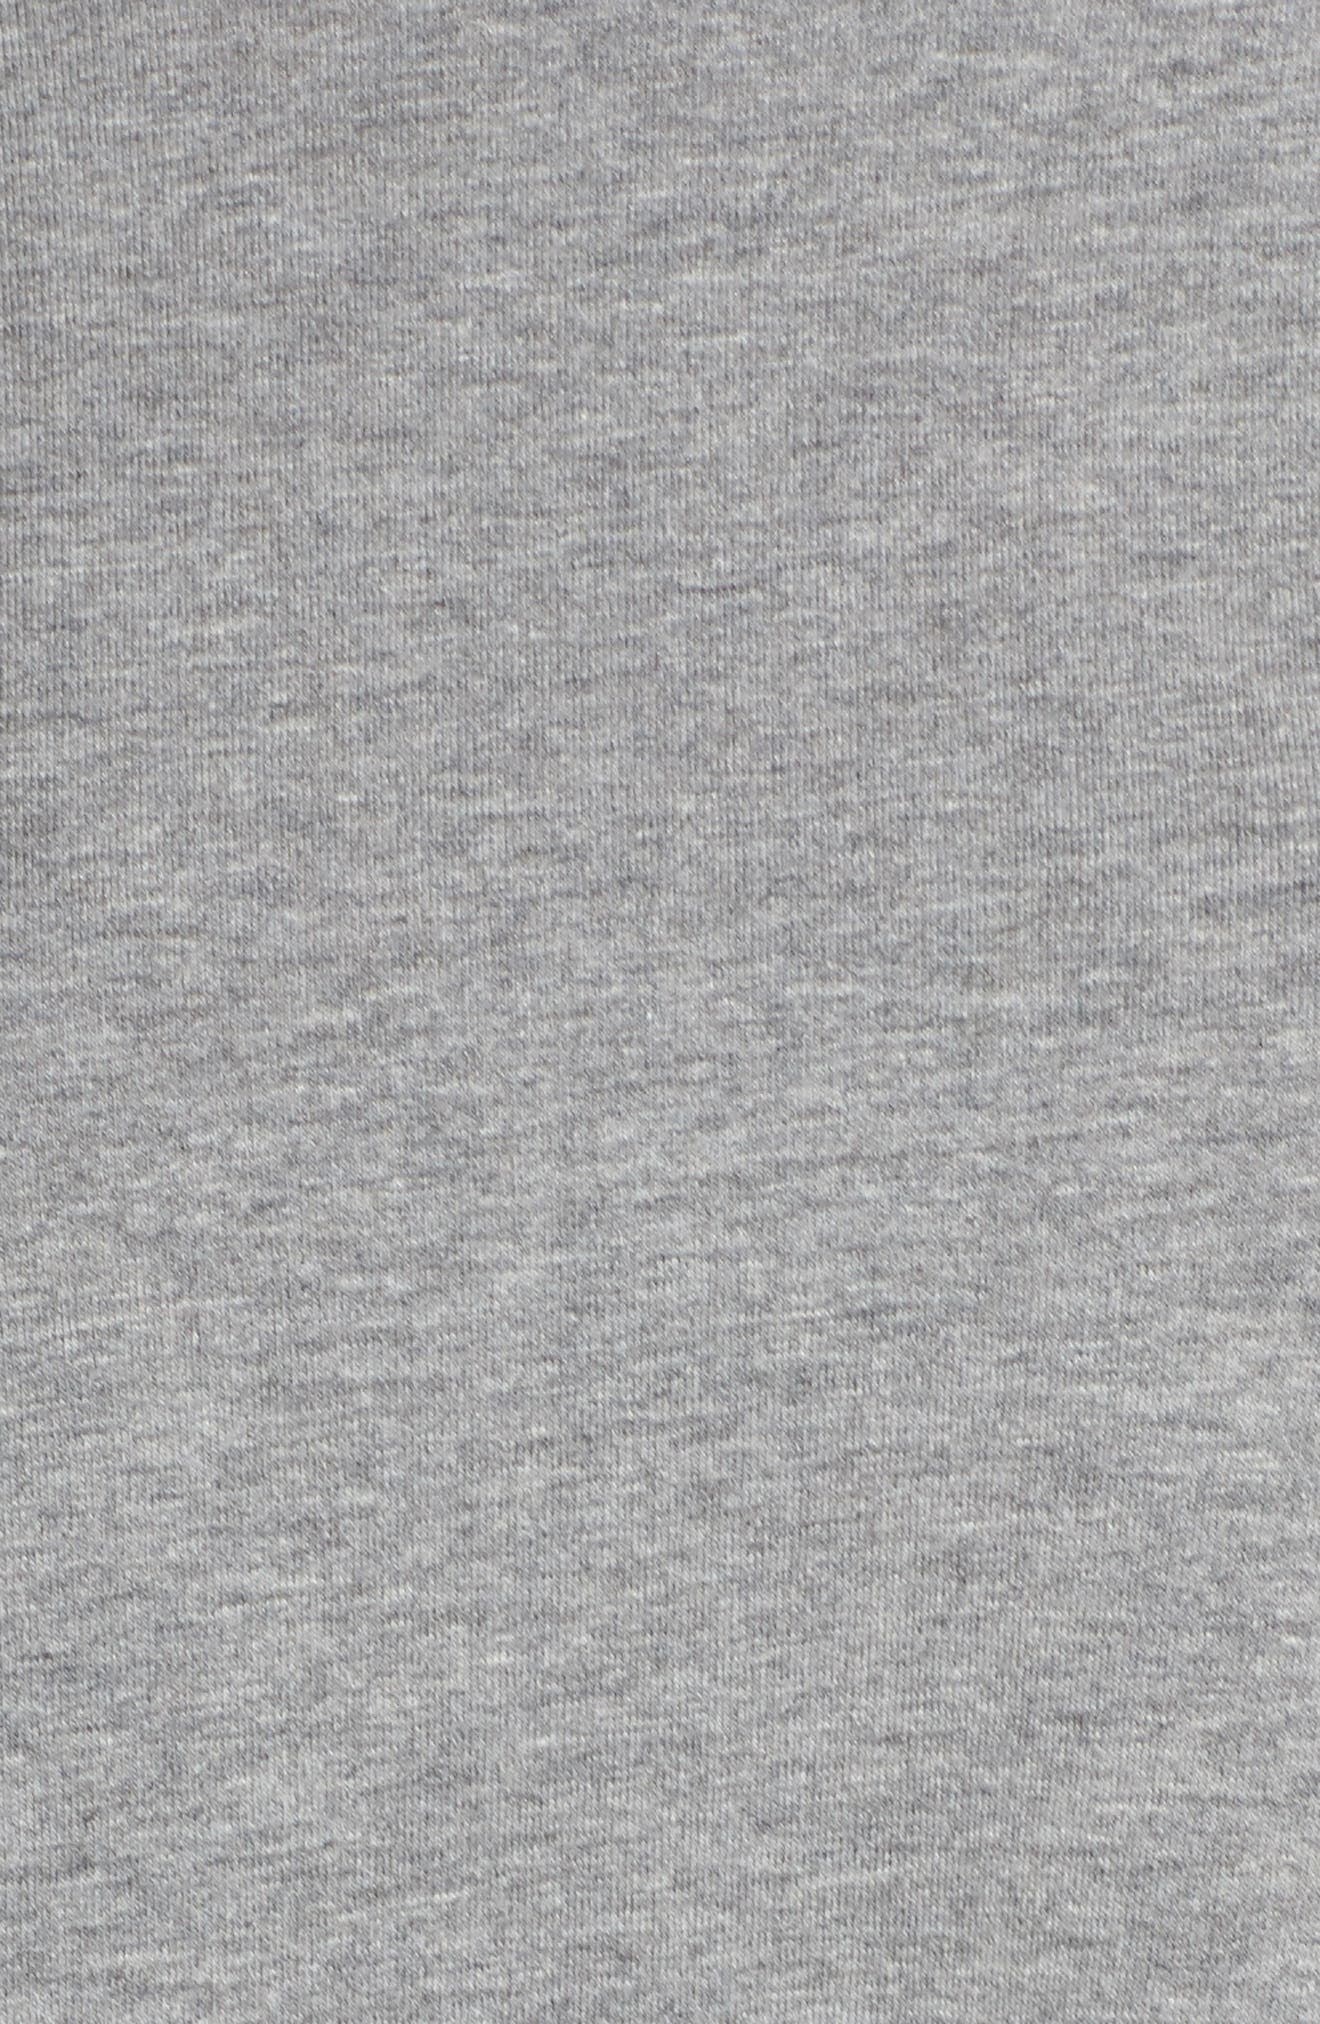 High/Low Sweatshirt,                             Alternate thumbnail 7, color,                             Heather Grey